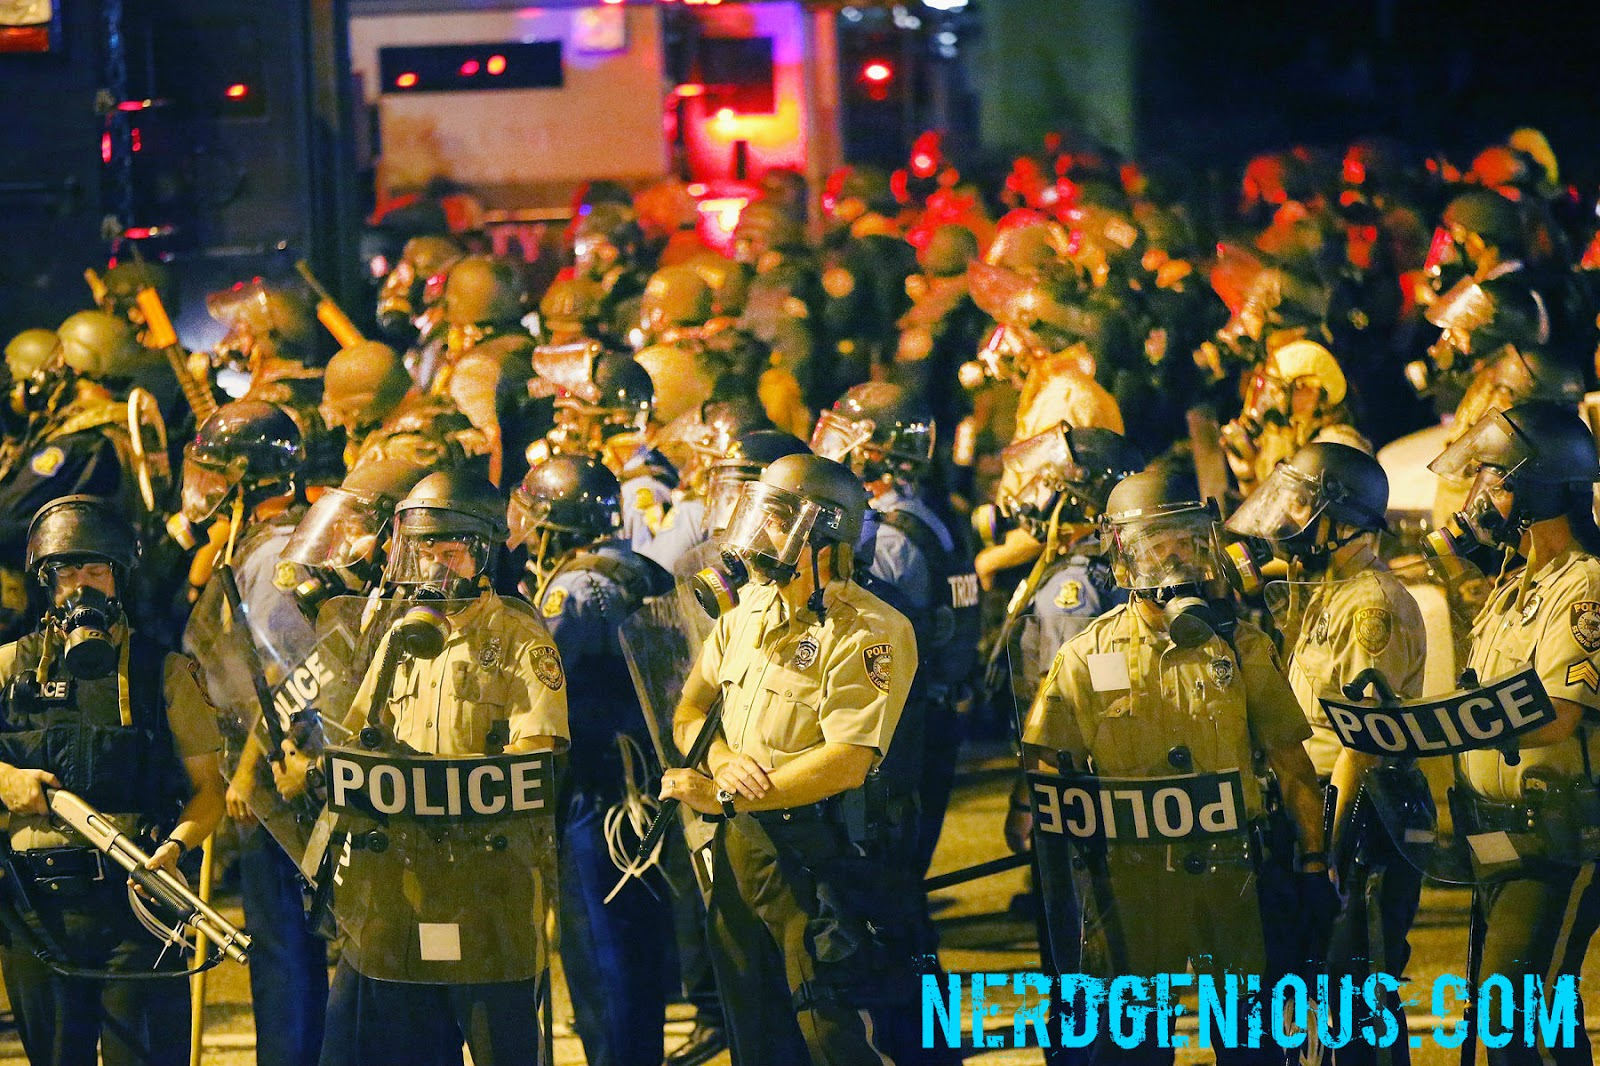 Missouri USA witnesses the full force of a fascist police state